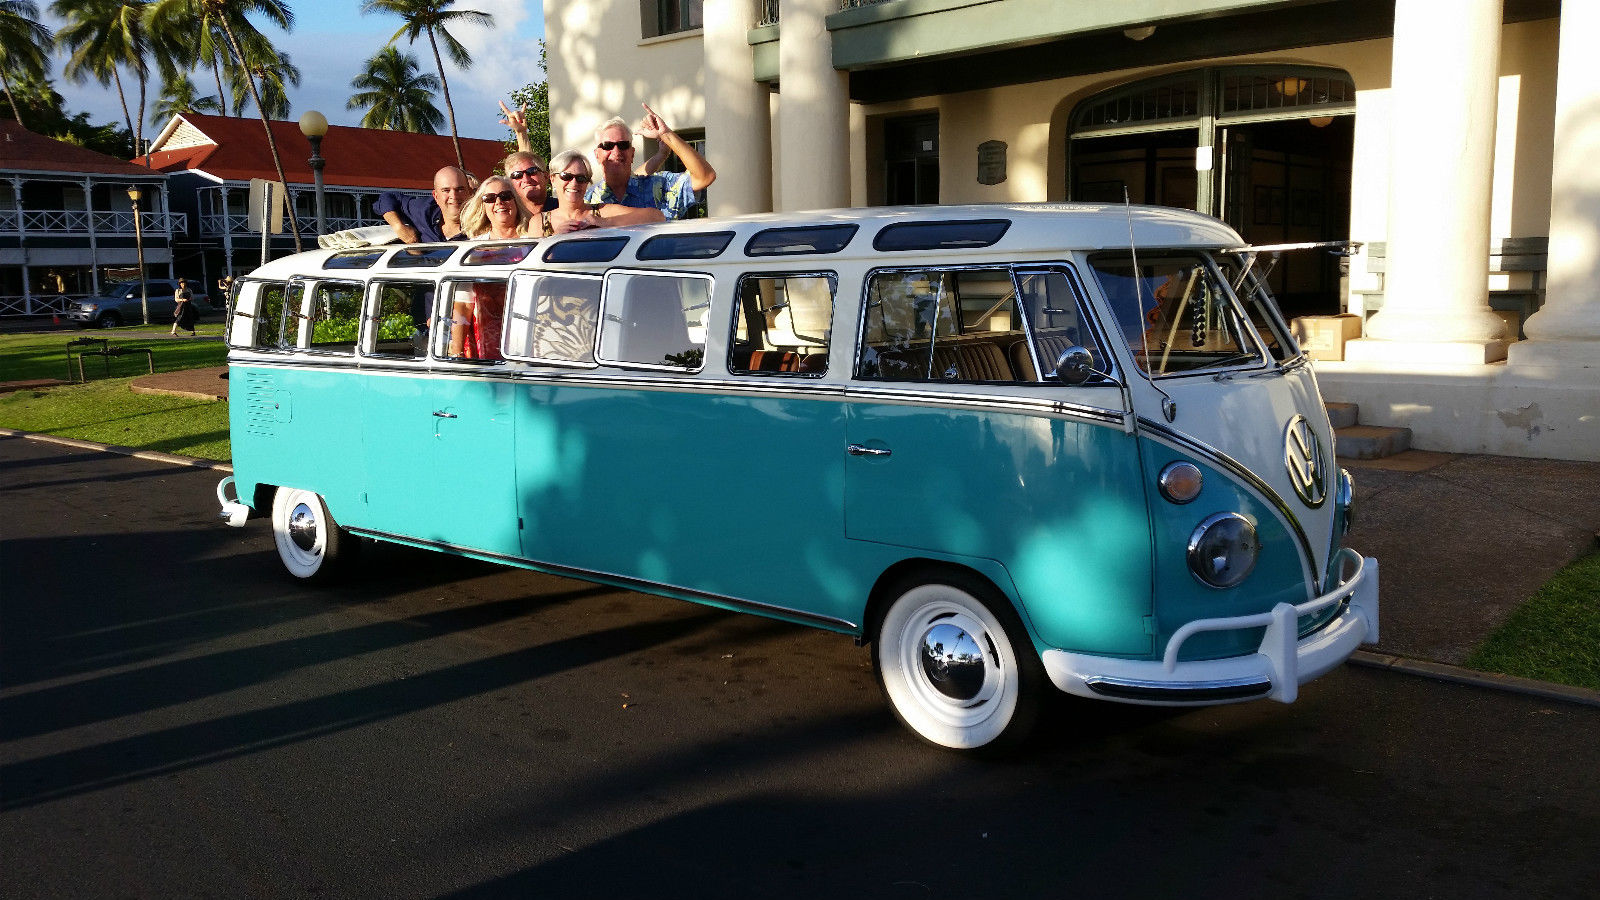 World's Only 1965 Volkswagen Stretch Bus Fits 12 Passengers, Is Up for Grabs - autoevolution